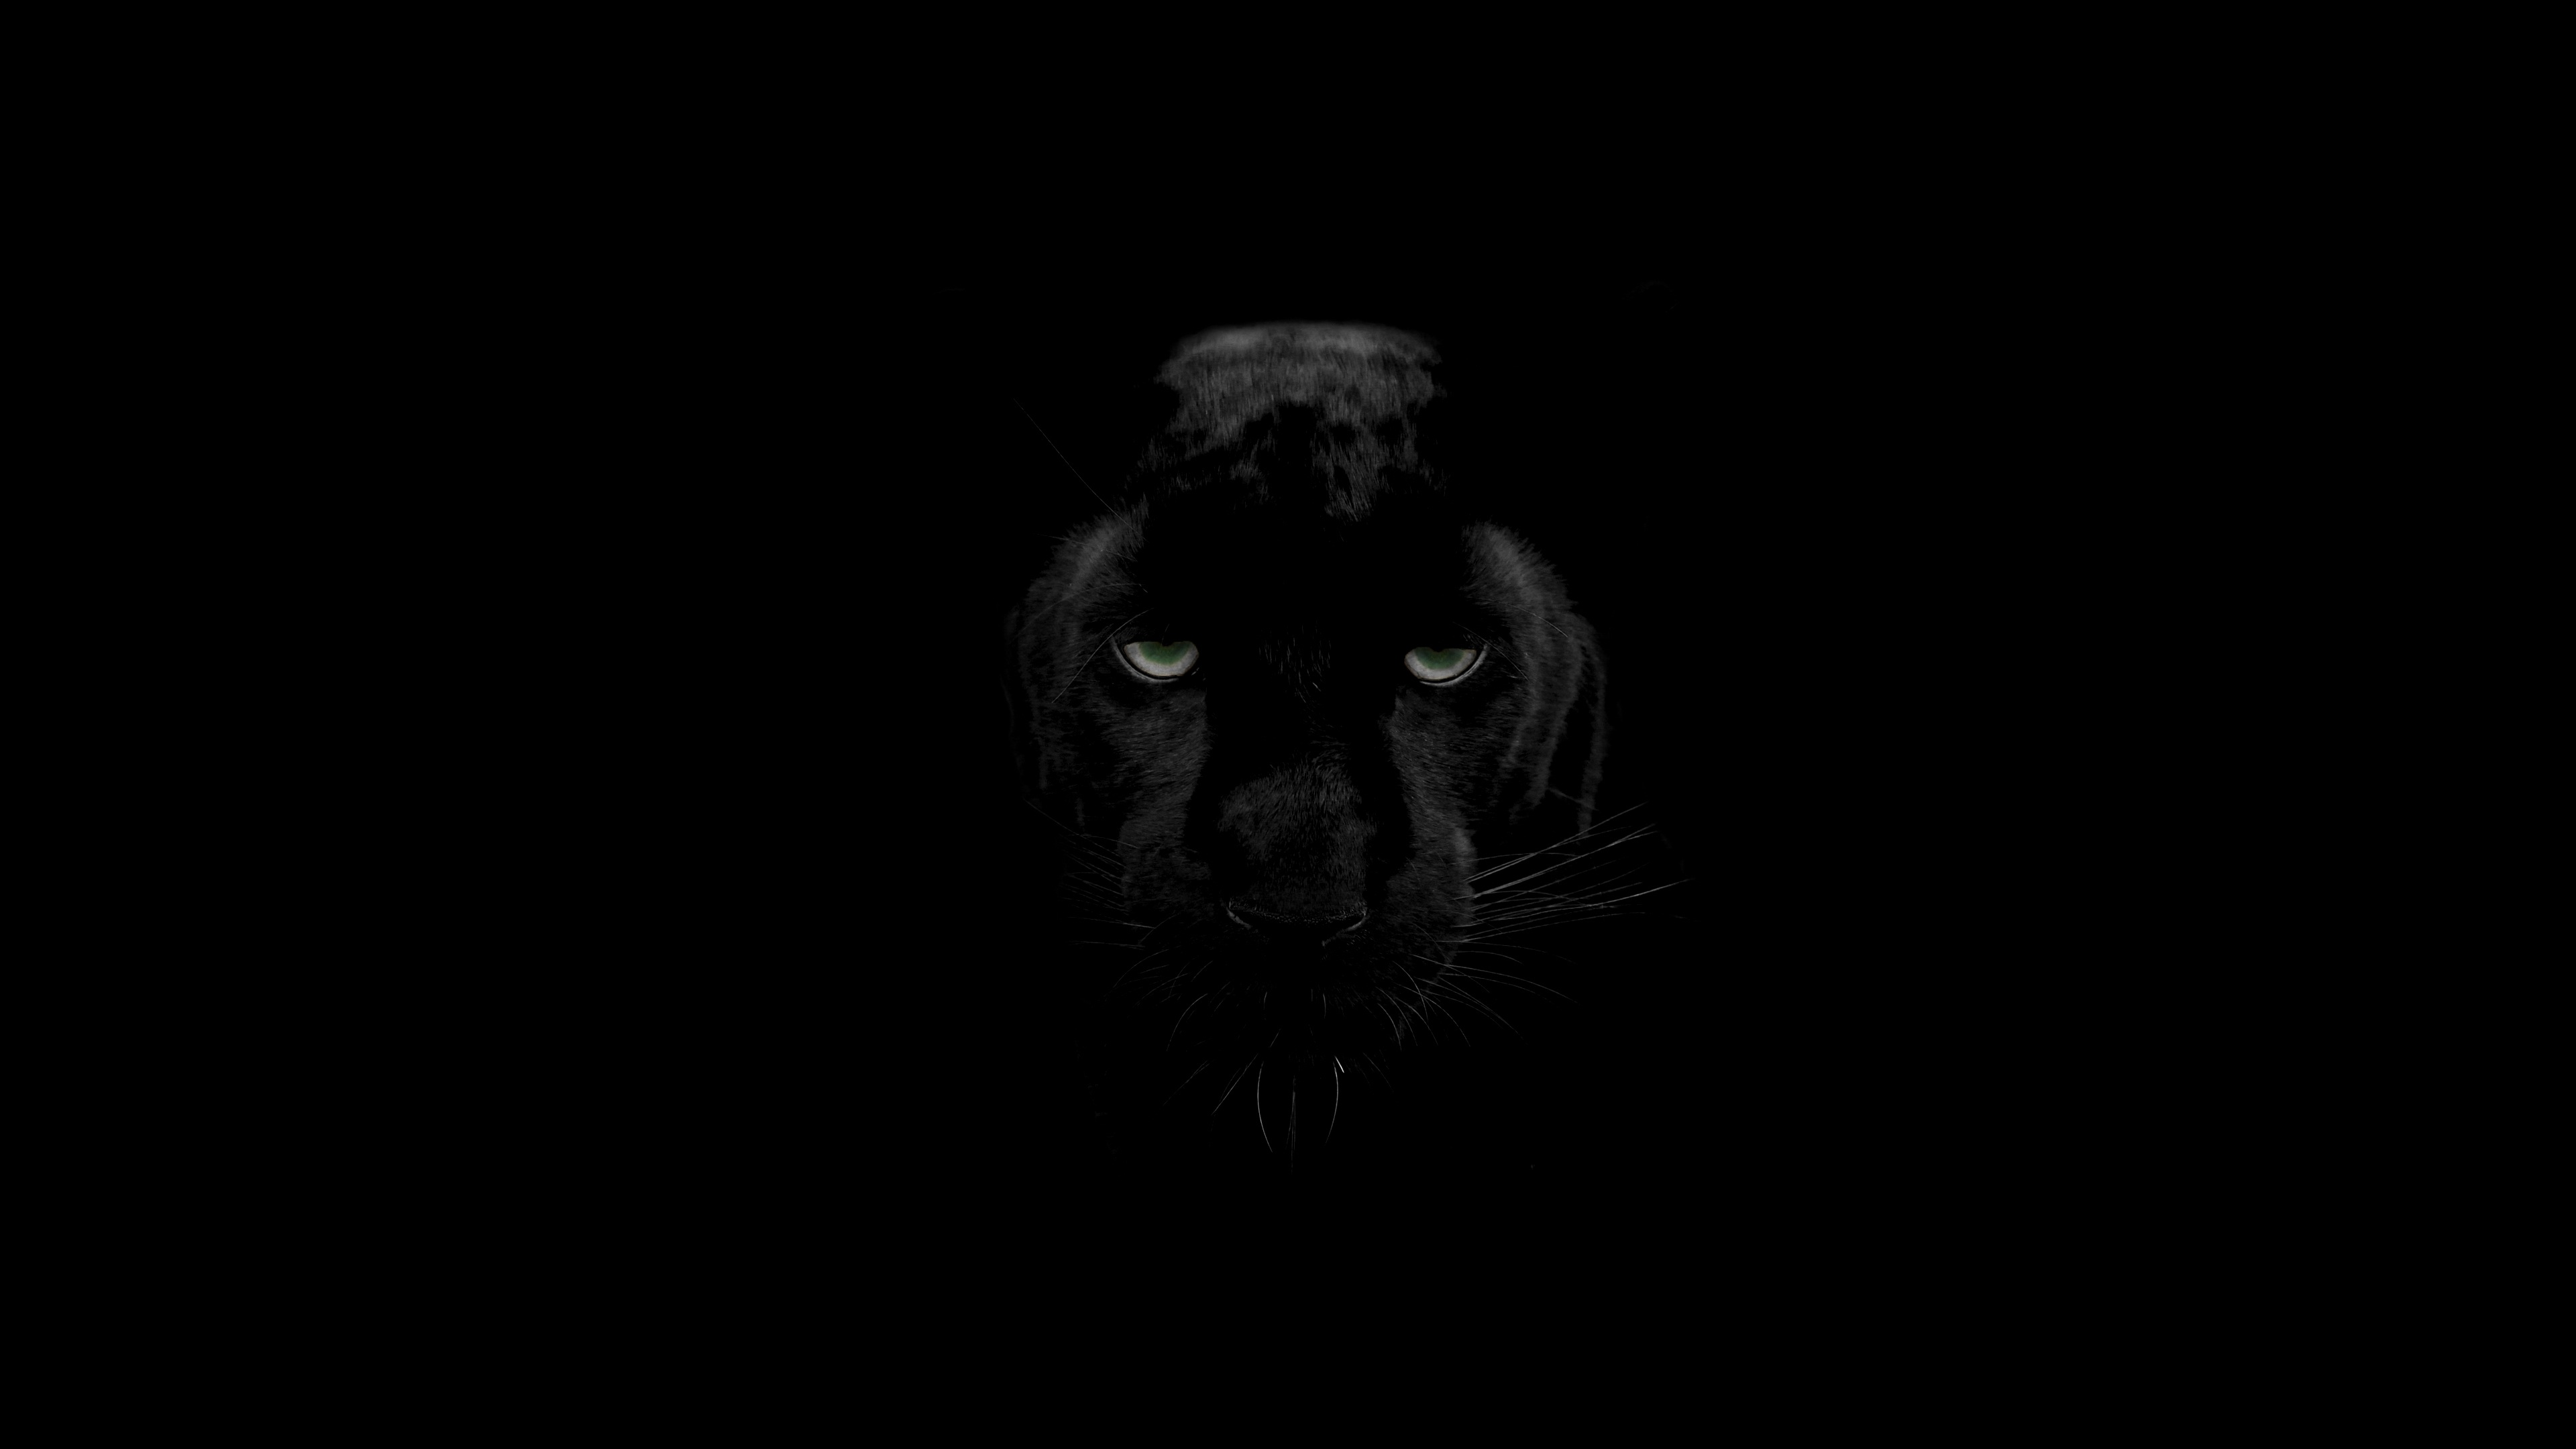 Black Panther Animal Hd Wallpaper For Android Best Funny